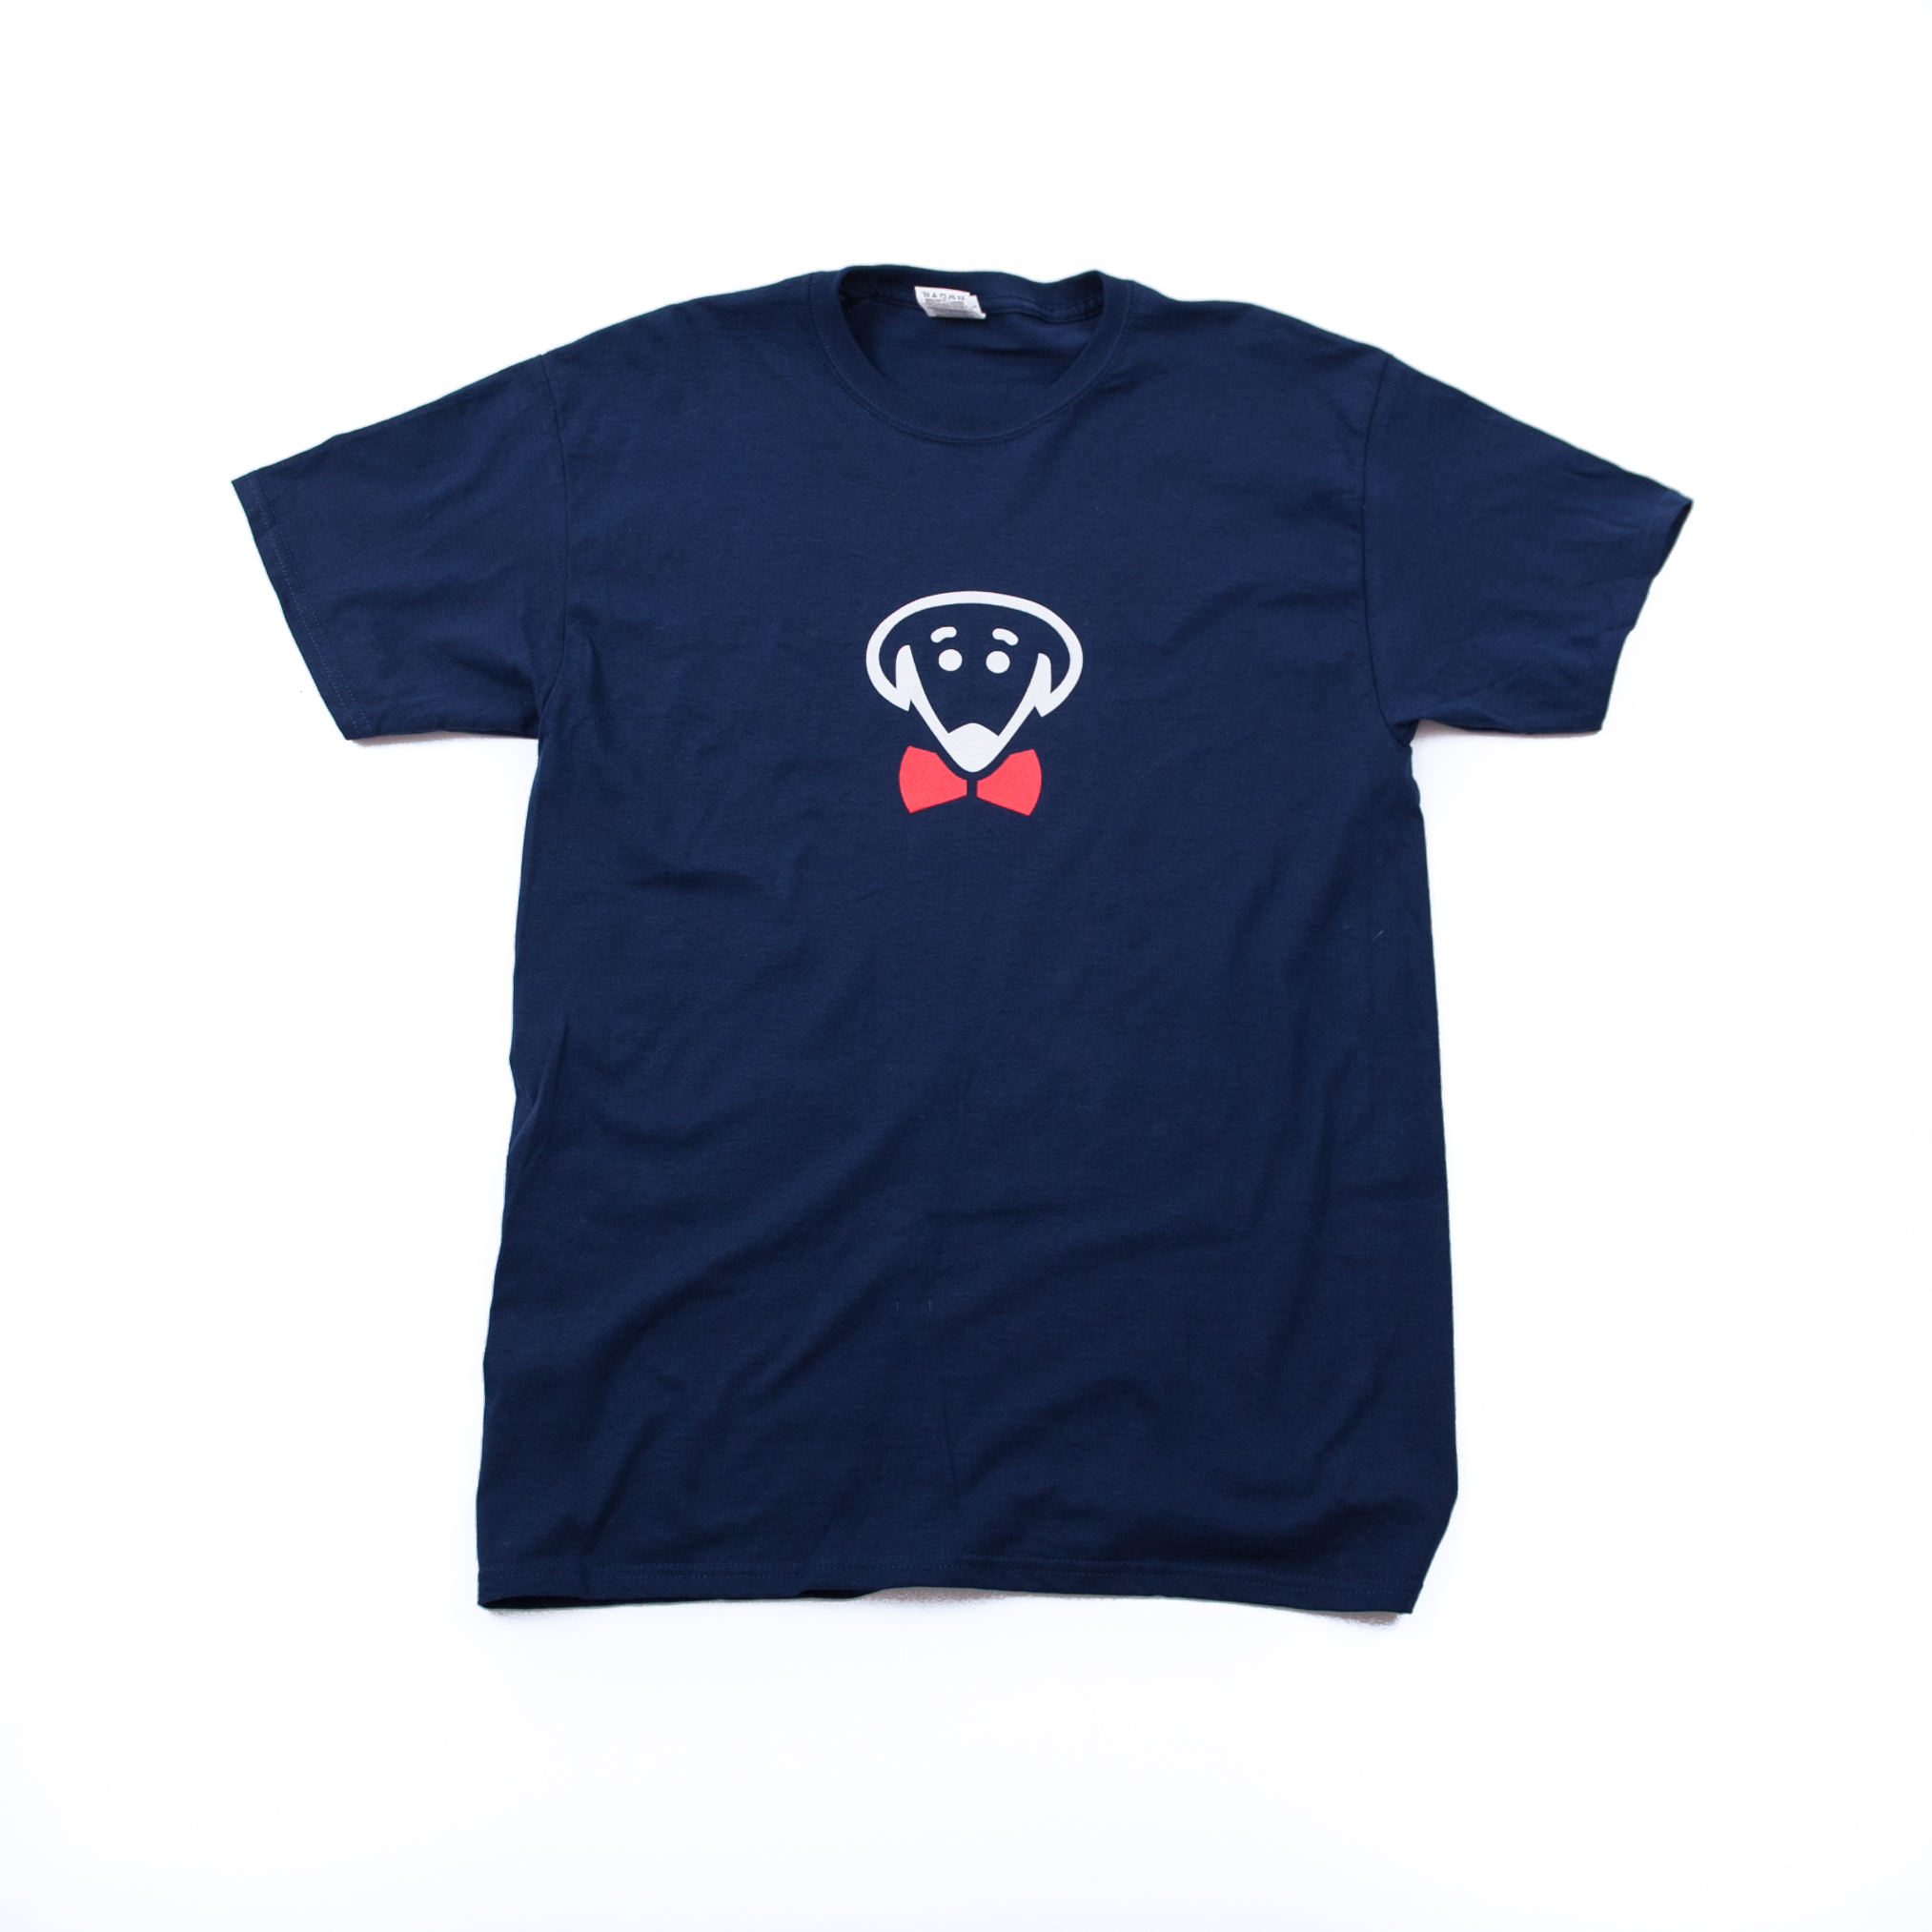 Bow Ties logo t-shirts – Navy Blue